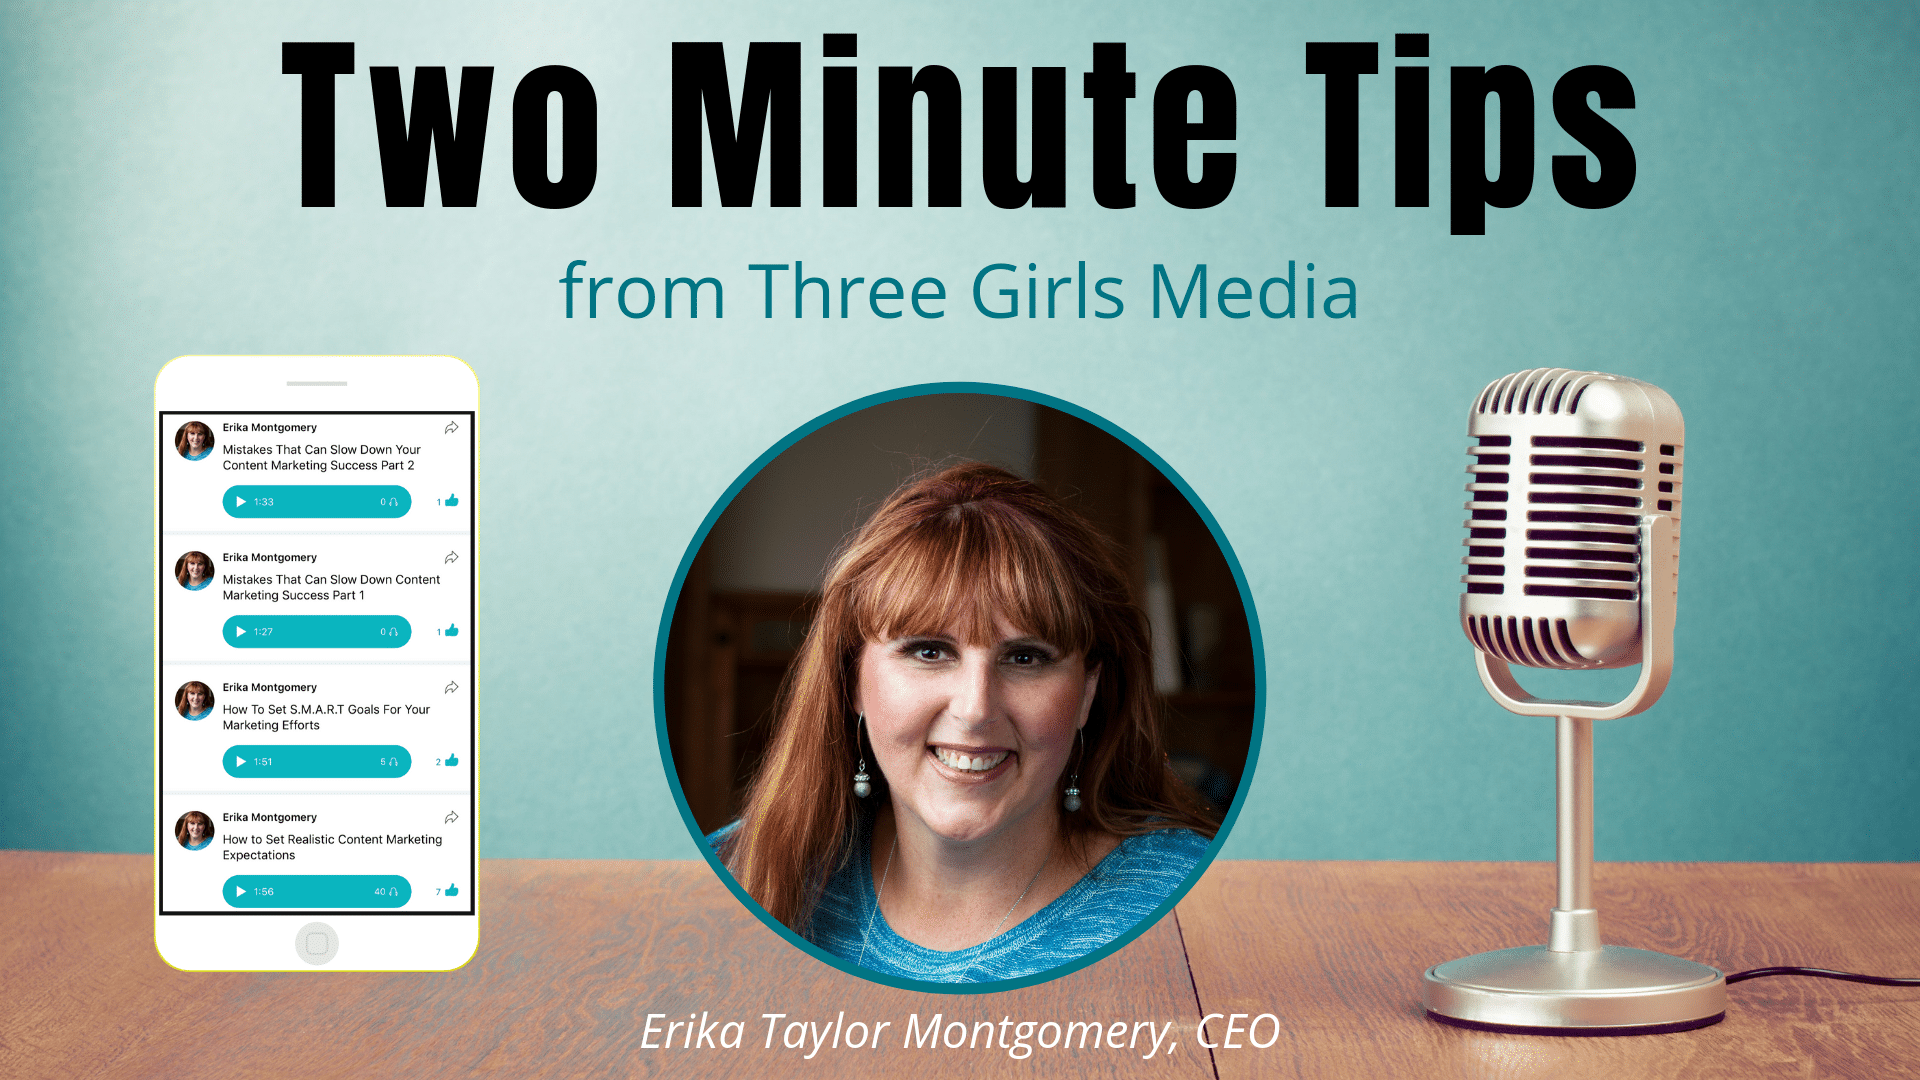 Two Minute Tips: 4 Tips For Creating Amazing Marketing Content